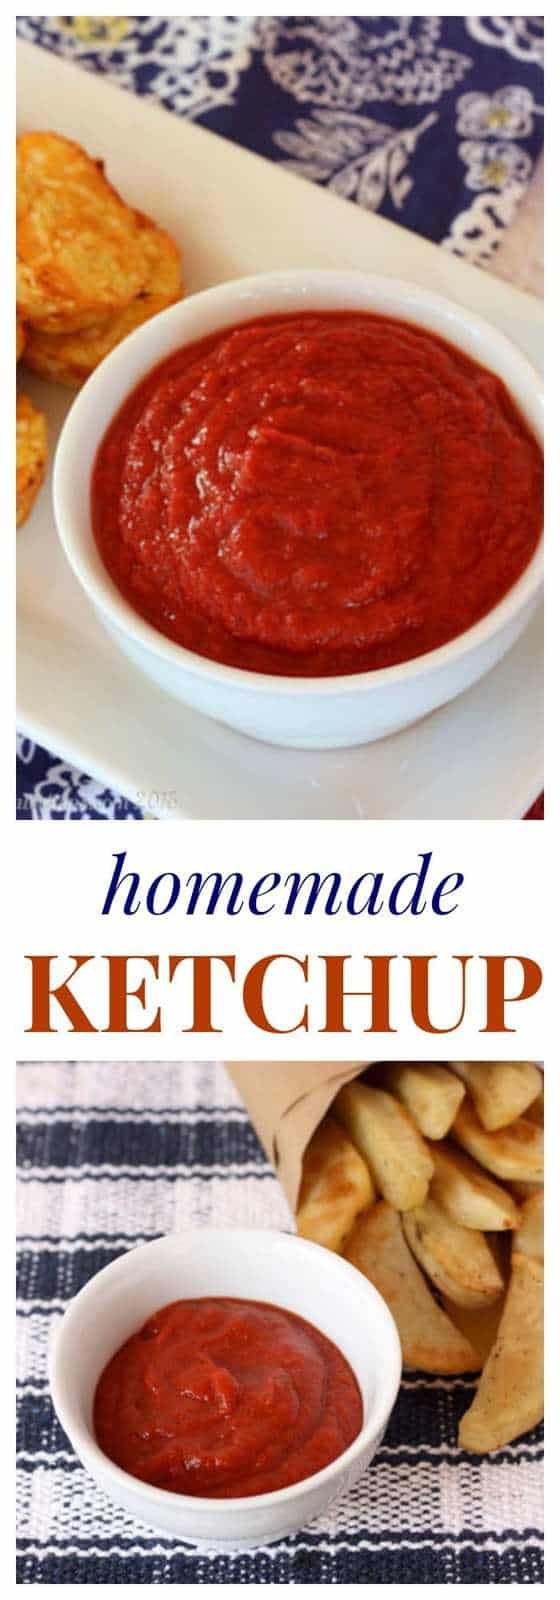 Homemade Ketchup {DIY Pantry Staples} - Cupcakes & Kale Chips